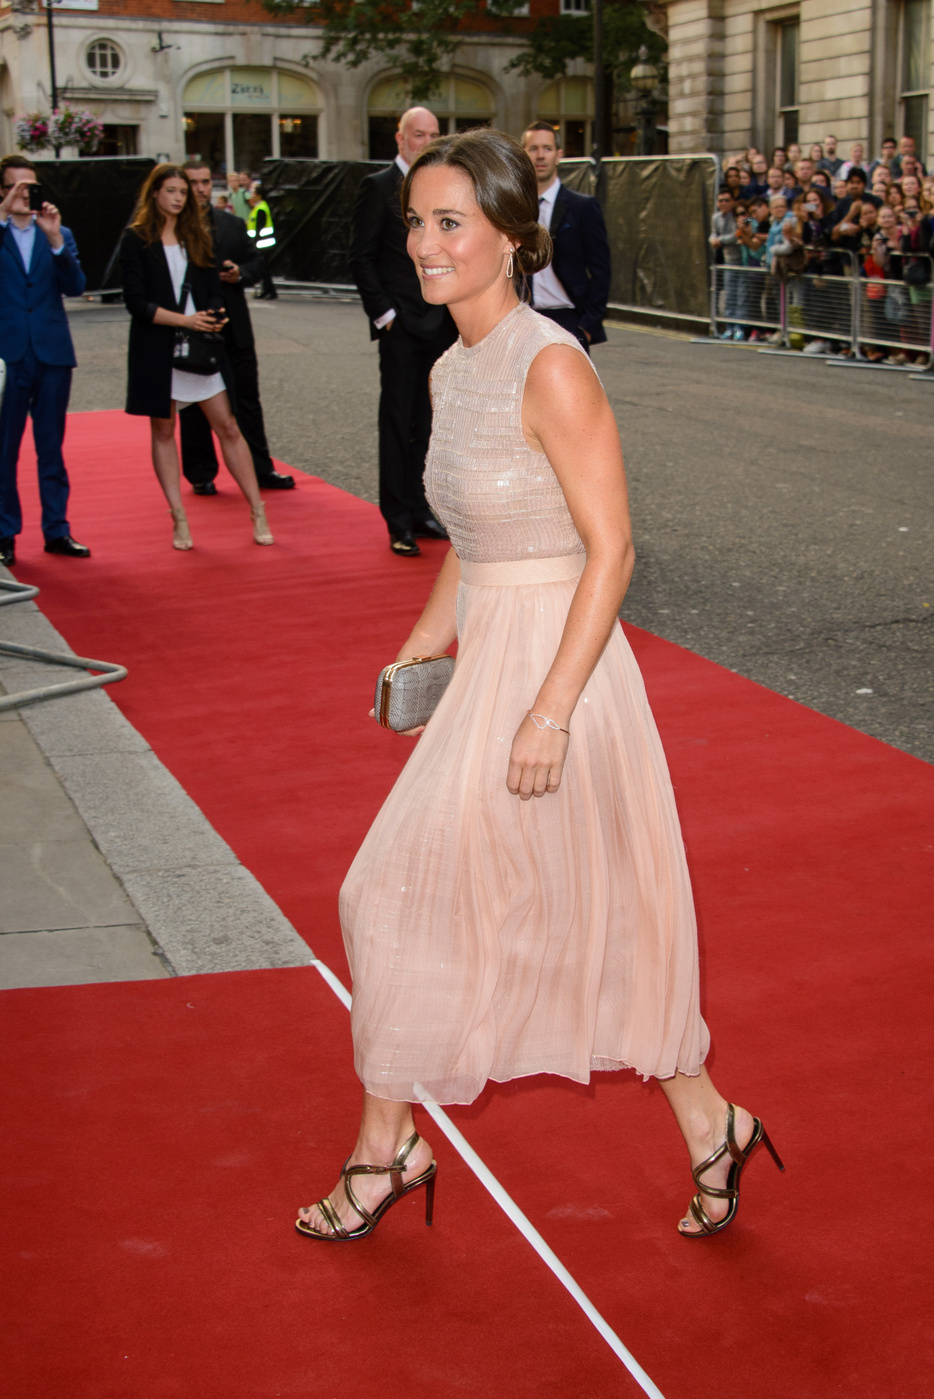 GQ Men of the Year Awards Fug or Fab: Pippa Middleton in Hugo Boss